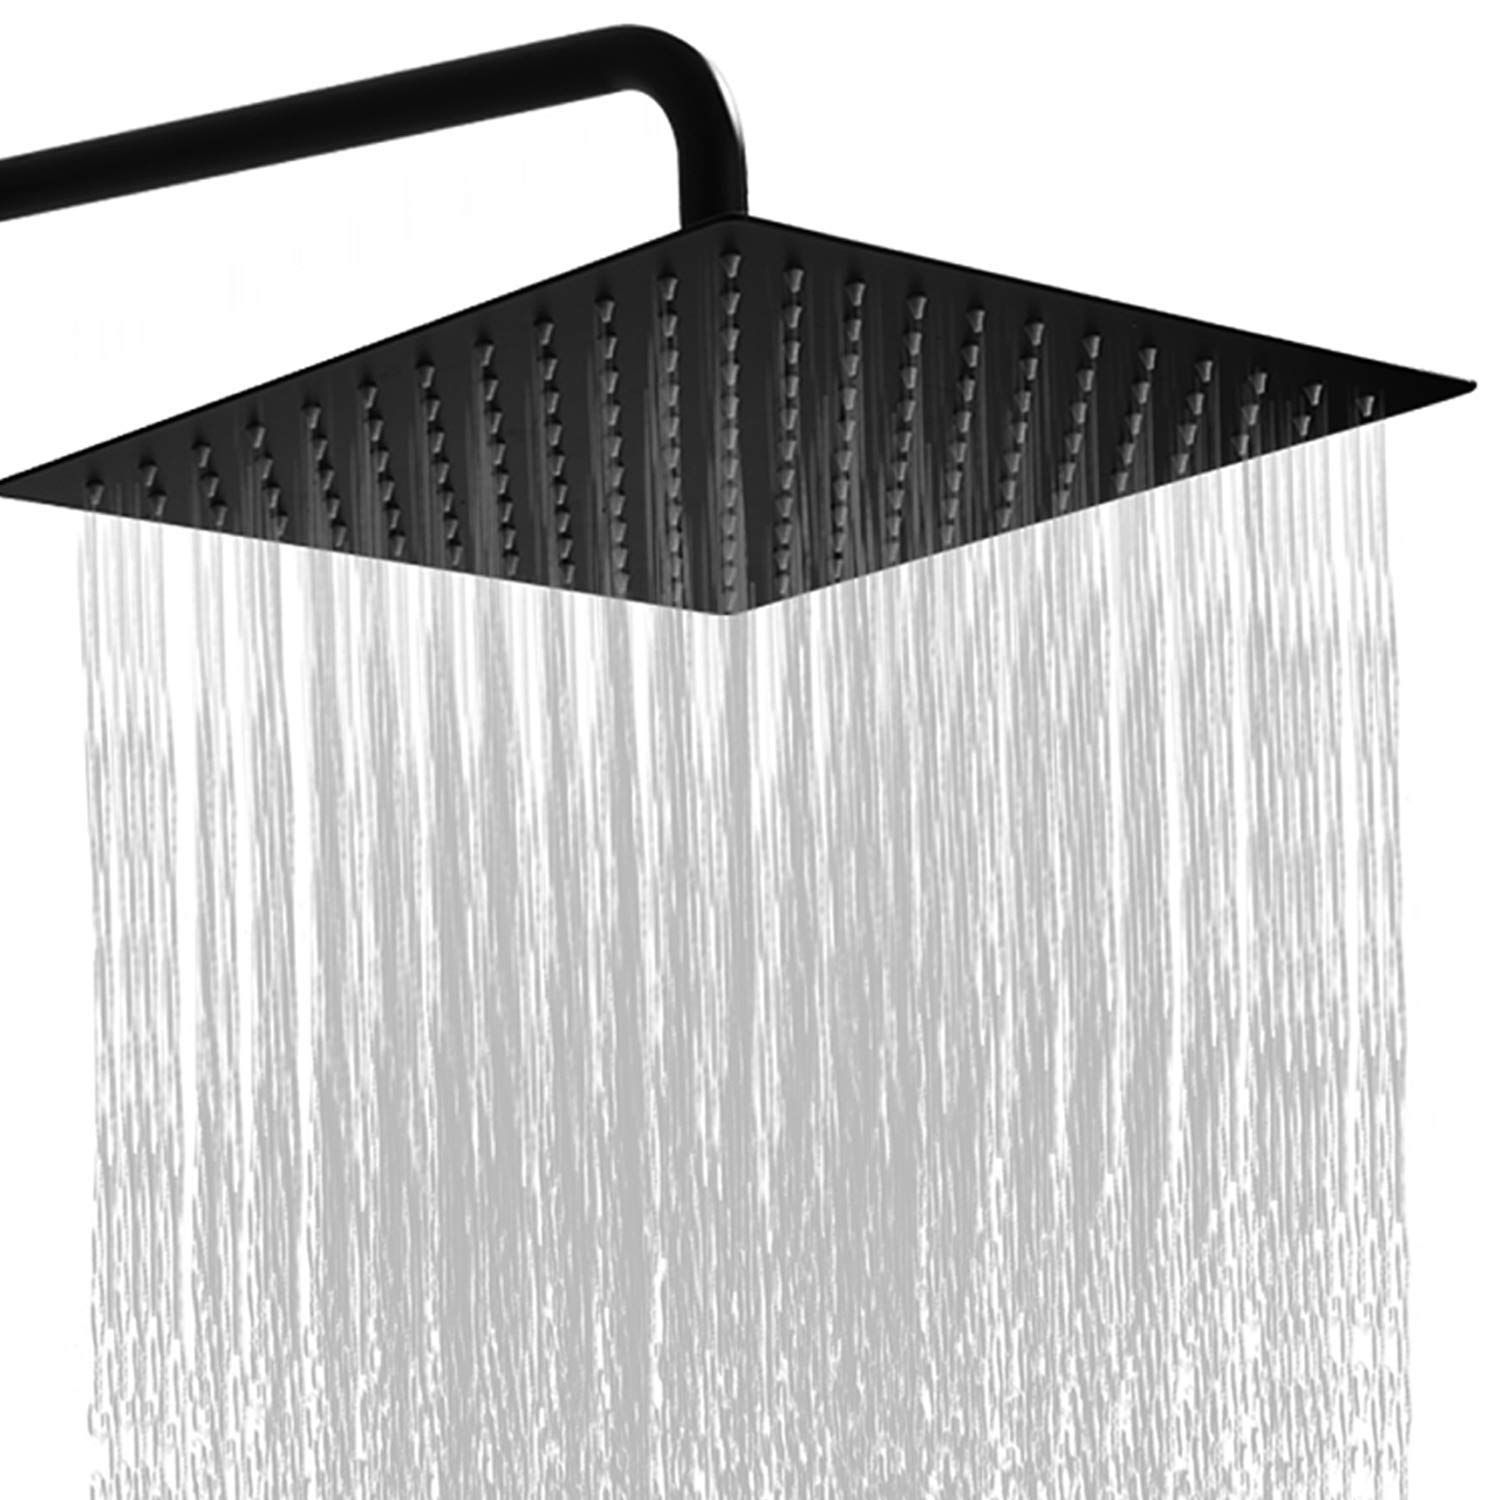 Square Stainless Steel Shower Head Rain Style Shower Head Oil Rubbed Bronze